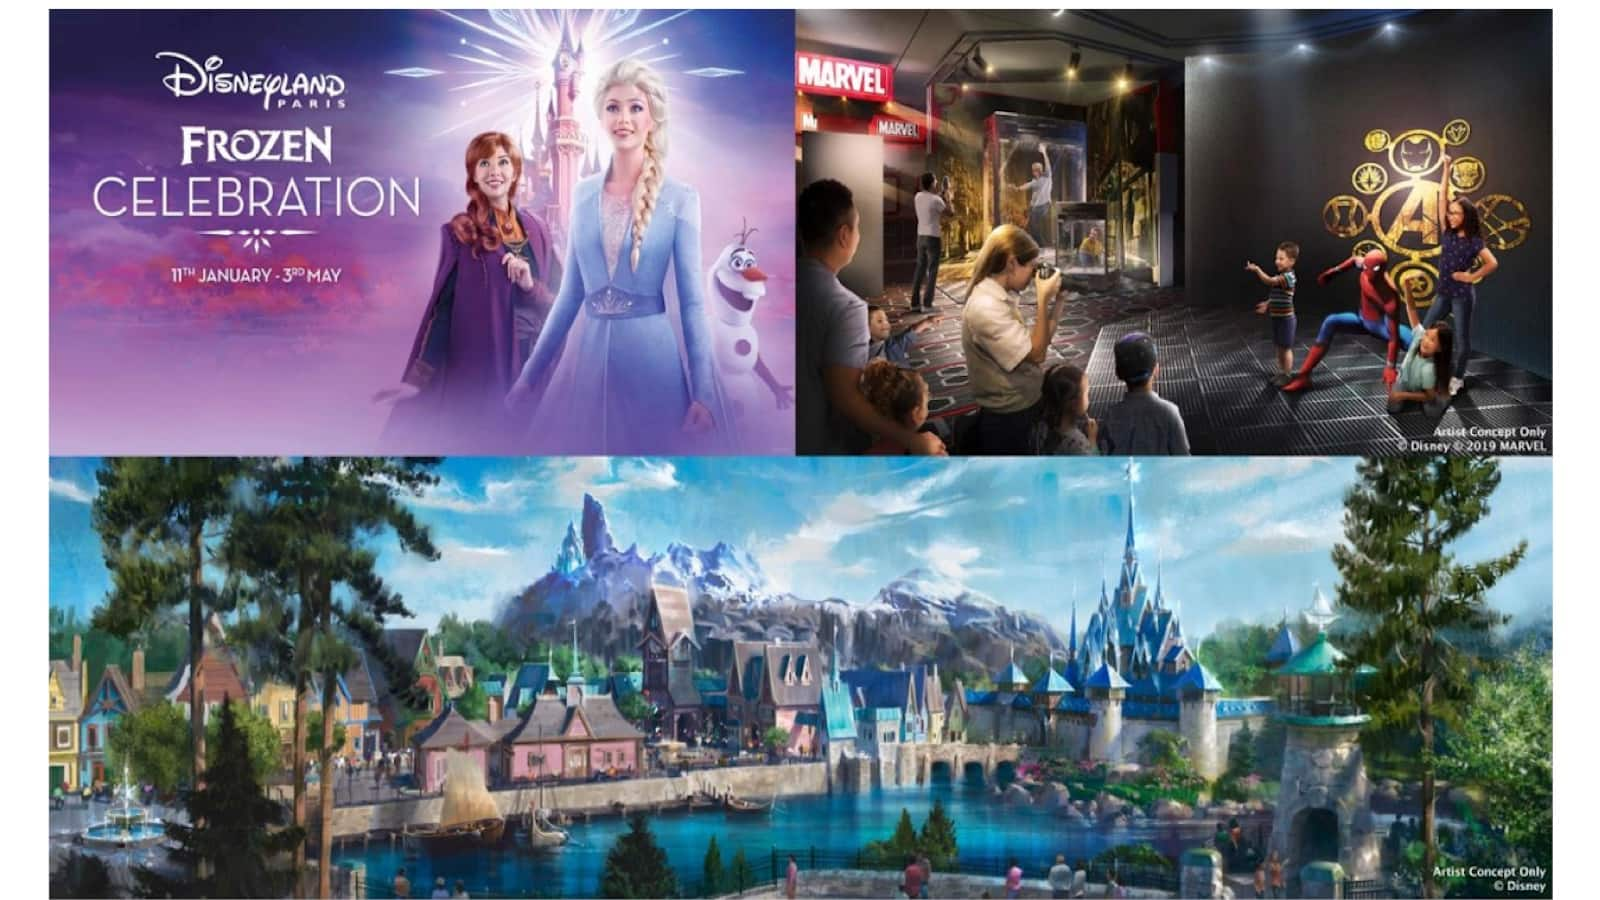 New Experiences Coming To Disneyland Paris In 2020 And Beyond Disney Parks Blog